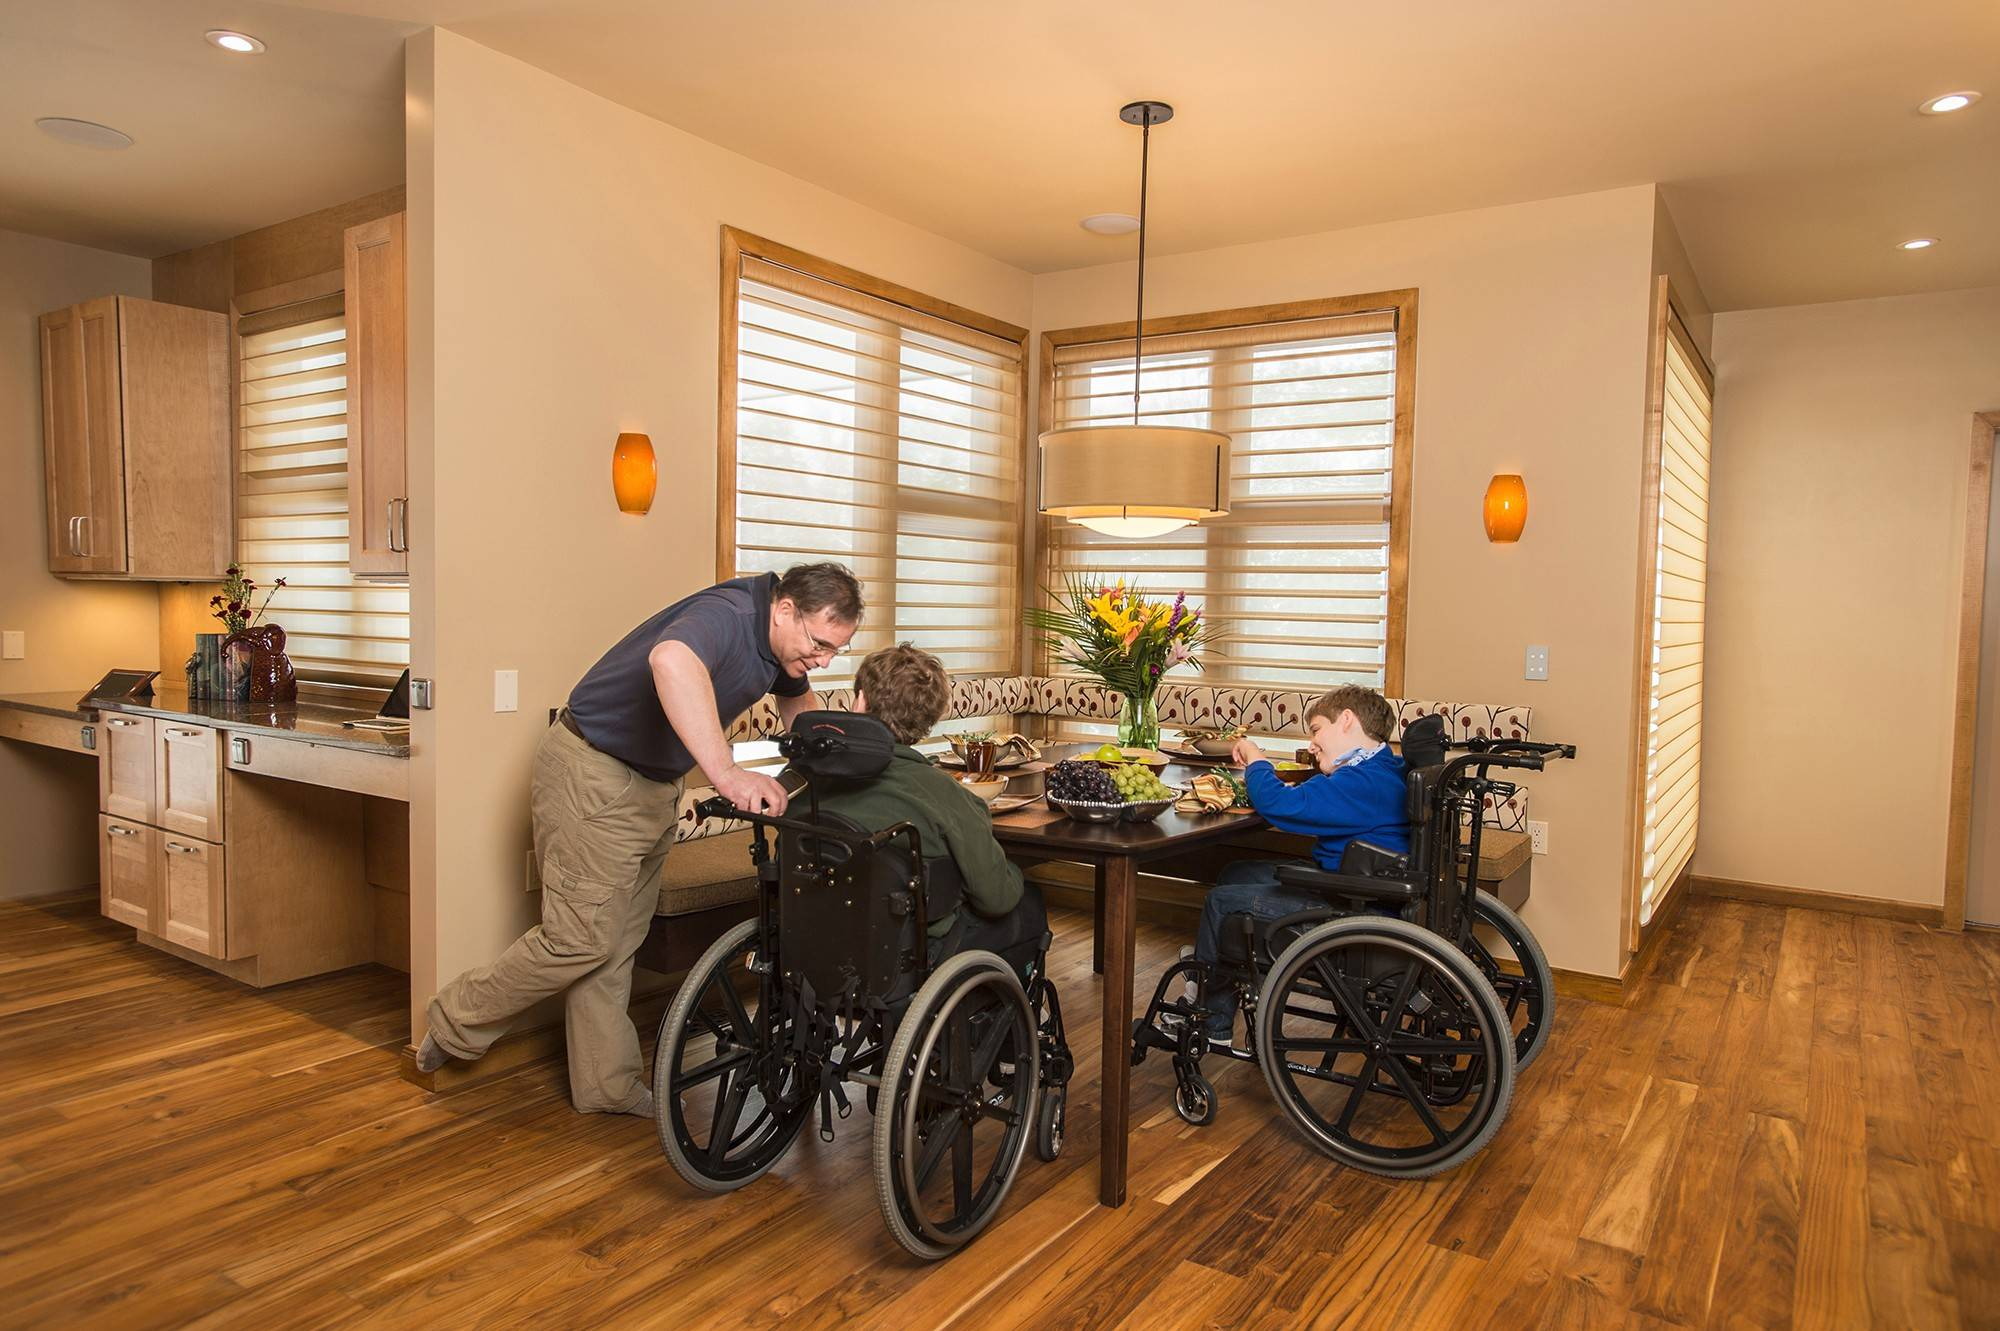 Andy Cibula talks with sons Joshua and David at the dining table in their custom-designed home. The table was custom built because wheelchair arms scraped along the original's underside. A banquette was chosen for seating instead of chairs, which could be obstructions.